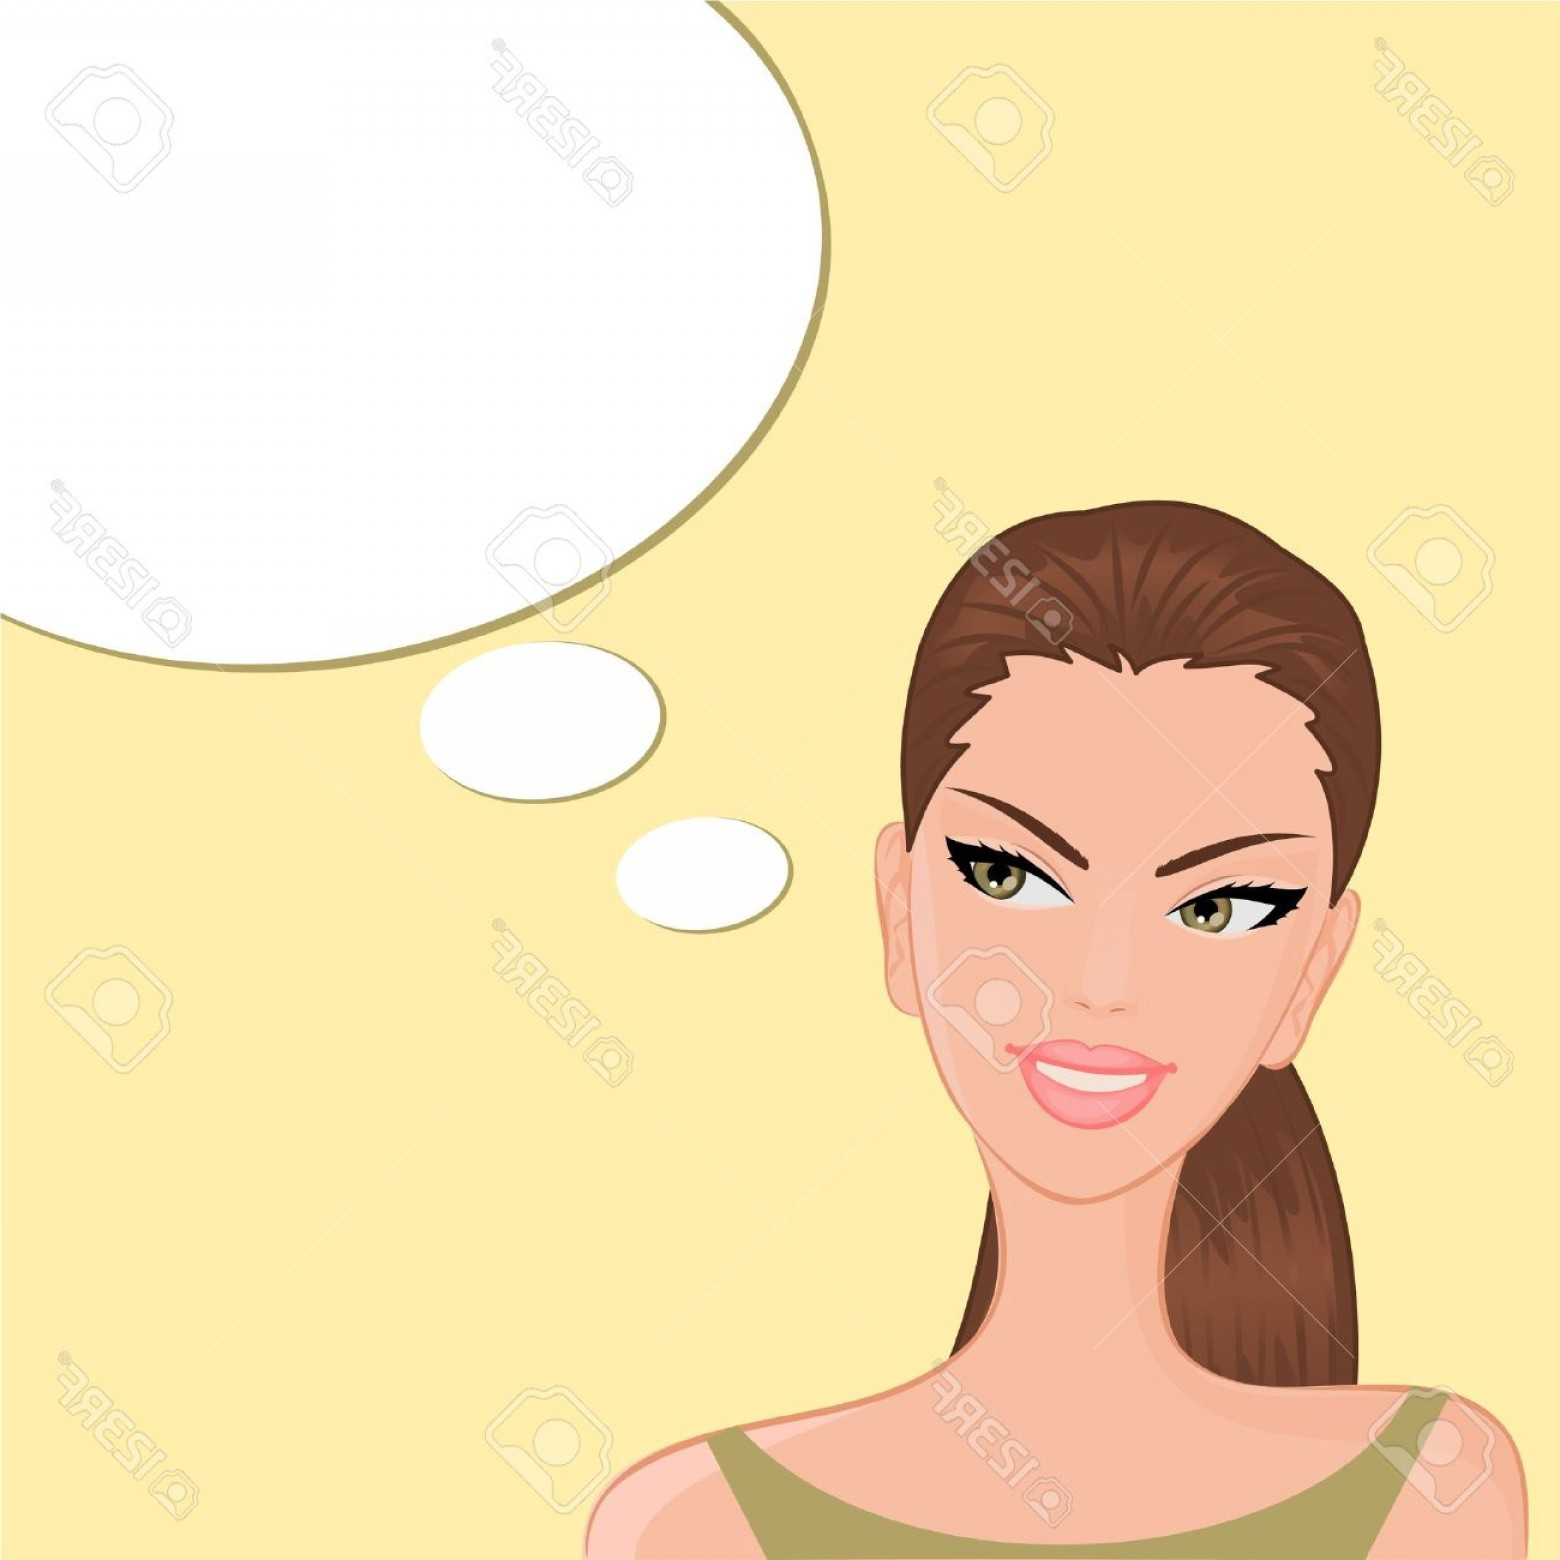 Lady Face Layers Vector: Photovector Illustration Of A Beautiful Smiling Girl With A Blank Thought Speech Bubble On Yellow Backgro